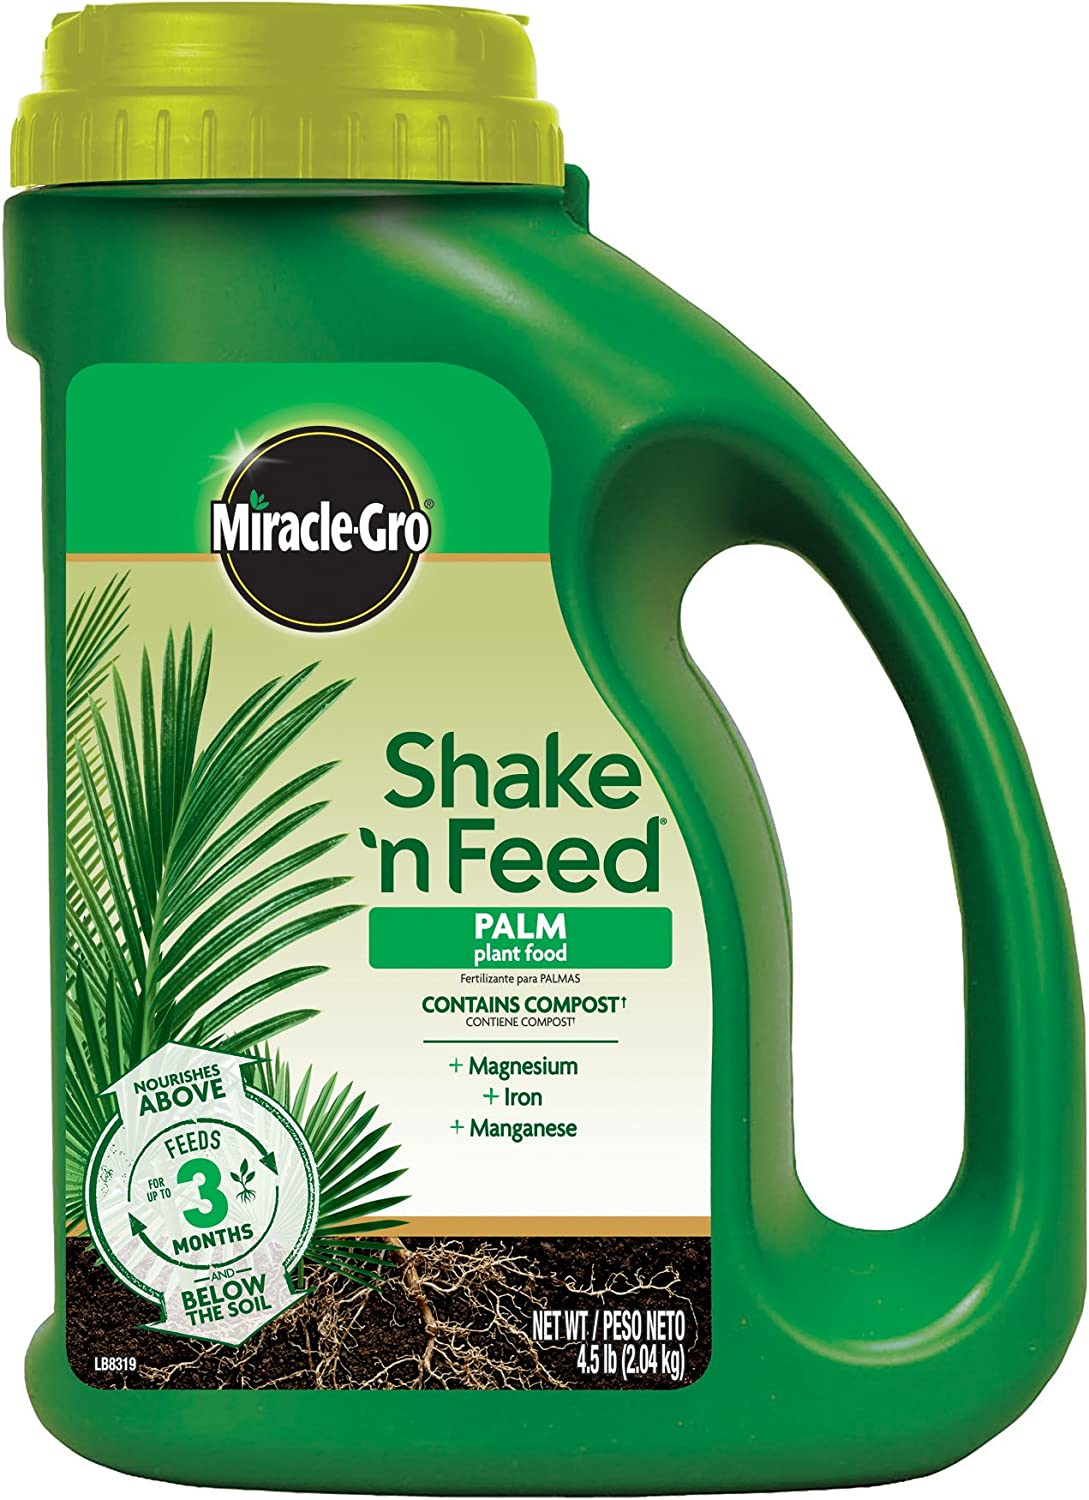 Miracle-Gro 3002910 Shake 'N Feed Continuous Release Palm Plant Food